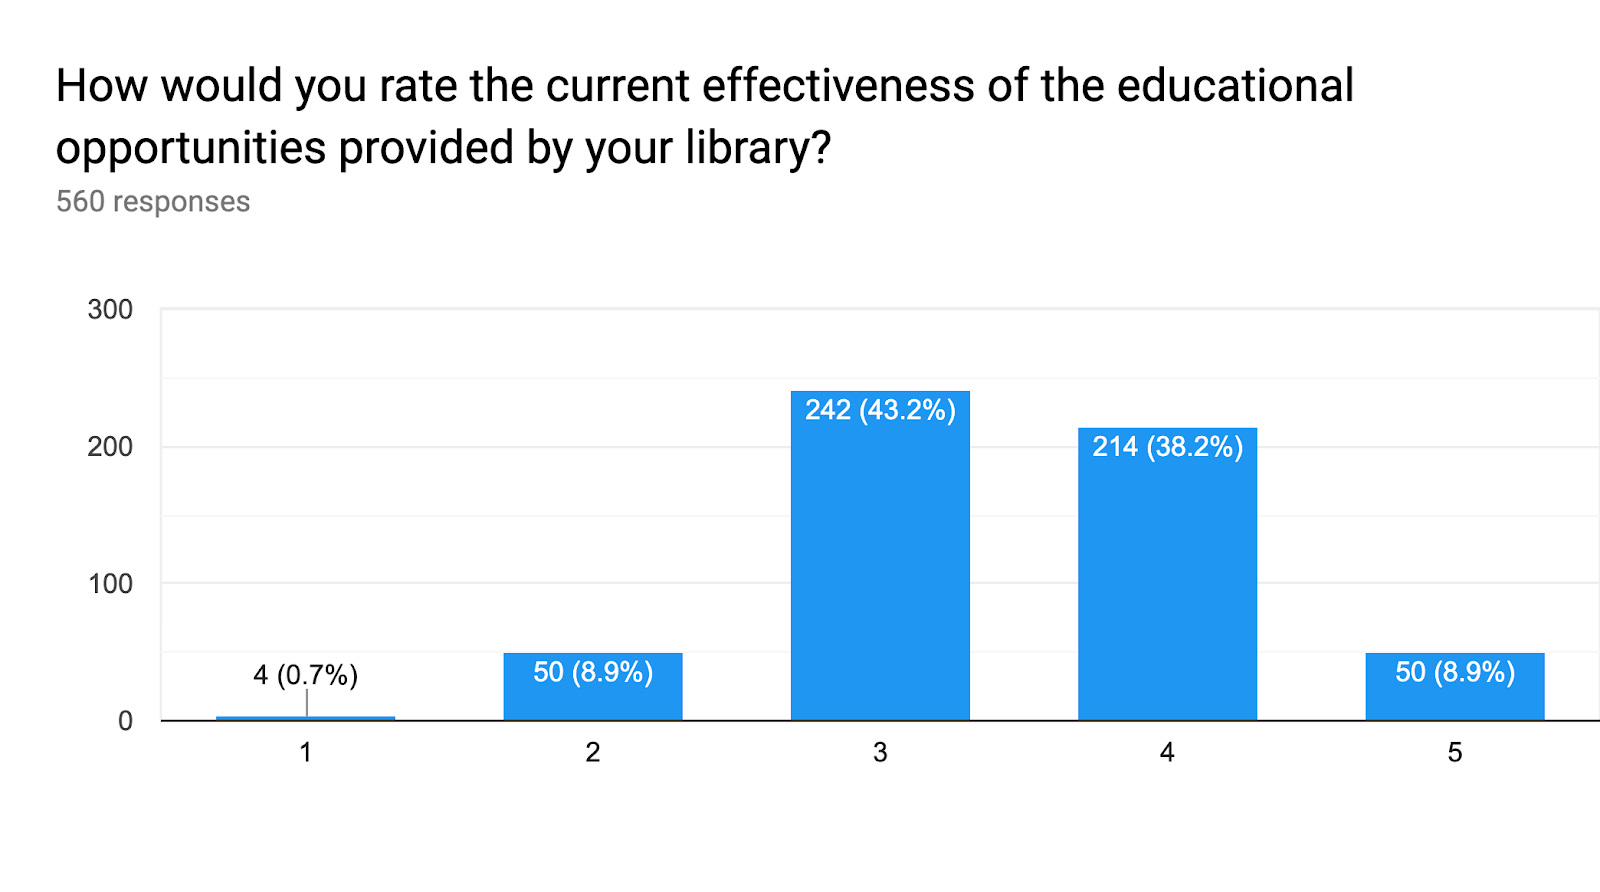 Forms response chart. Question title: How would you rate the current effectiveness of the educational opportunities provided by your library?. Number of responses: 560 responses.